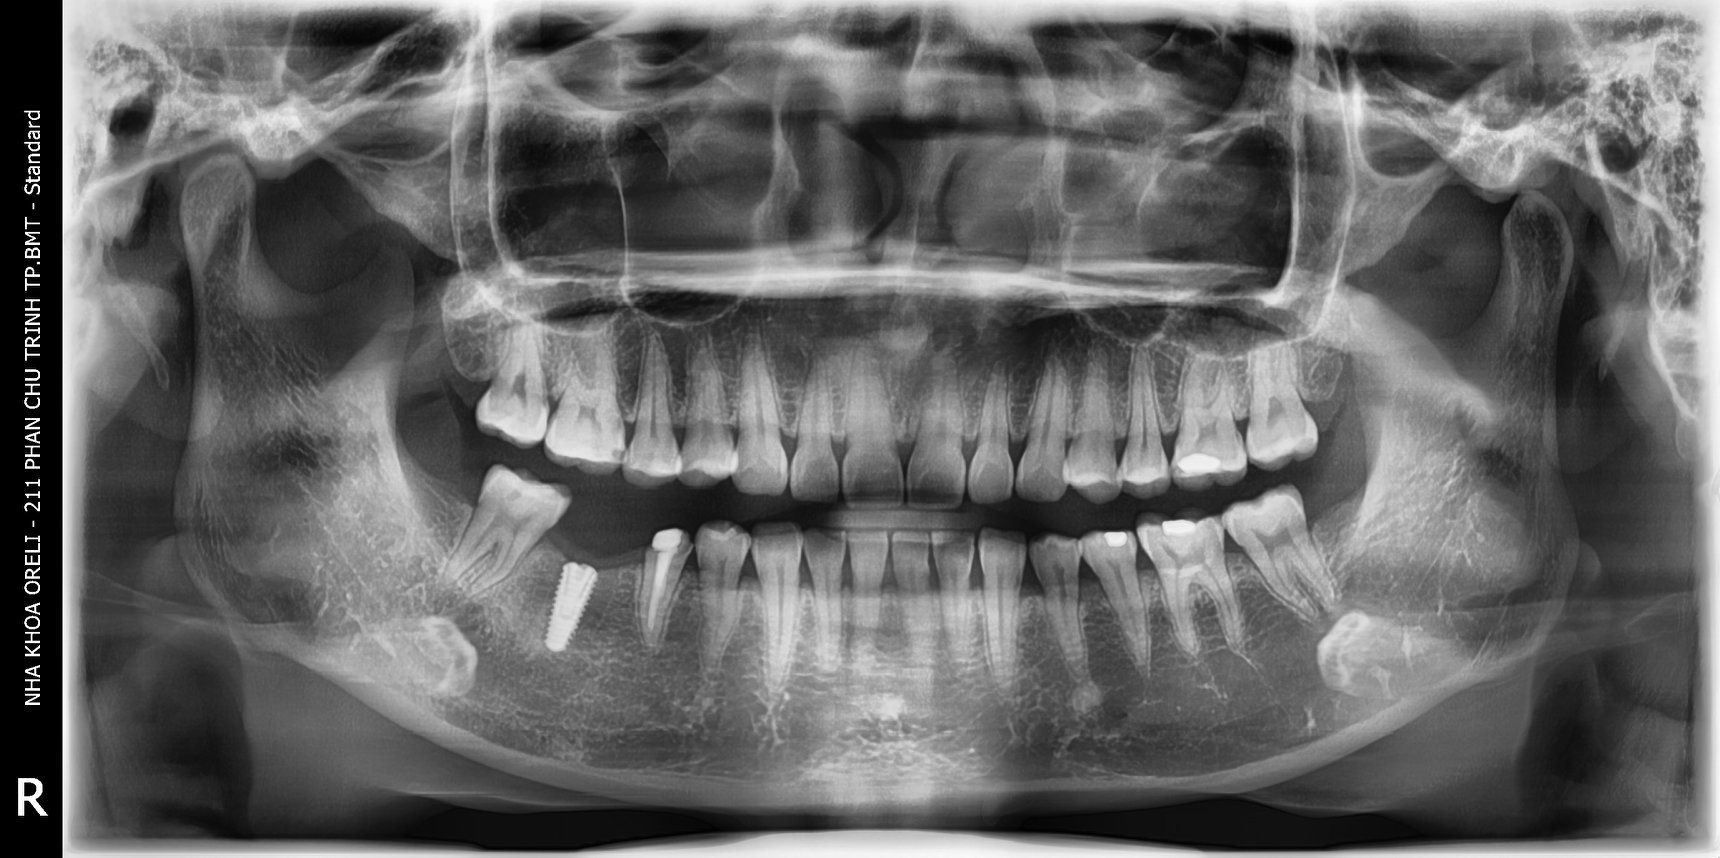 cấy implant uy tín bmt